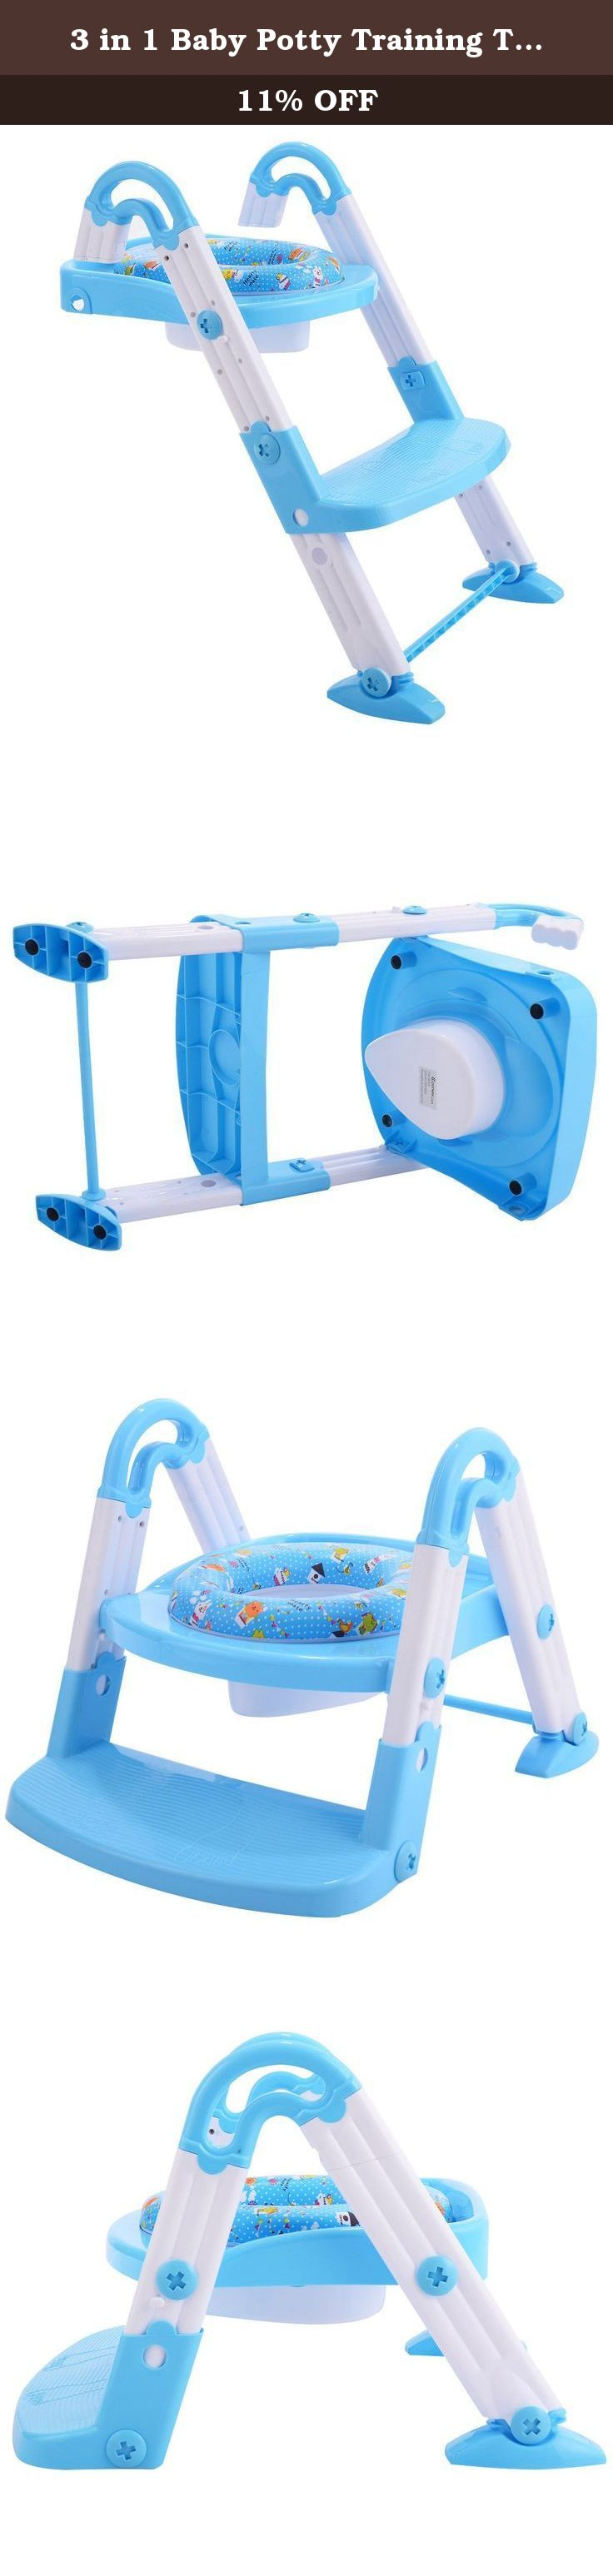 3 in 1 Baby Potty Training Toilet Chair Seat Step Ladder Trainer ...